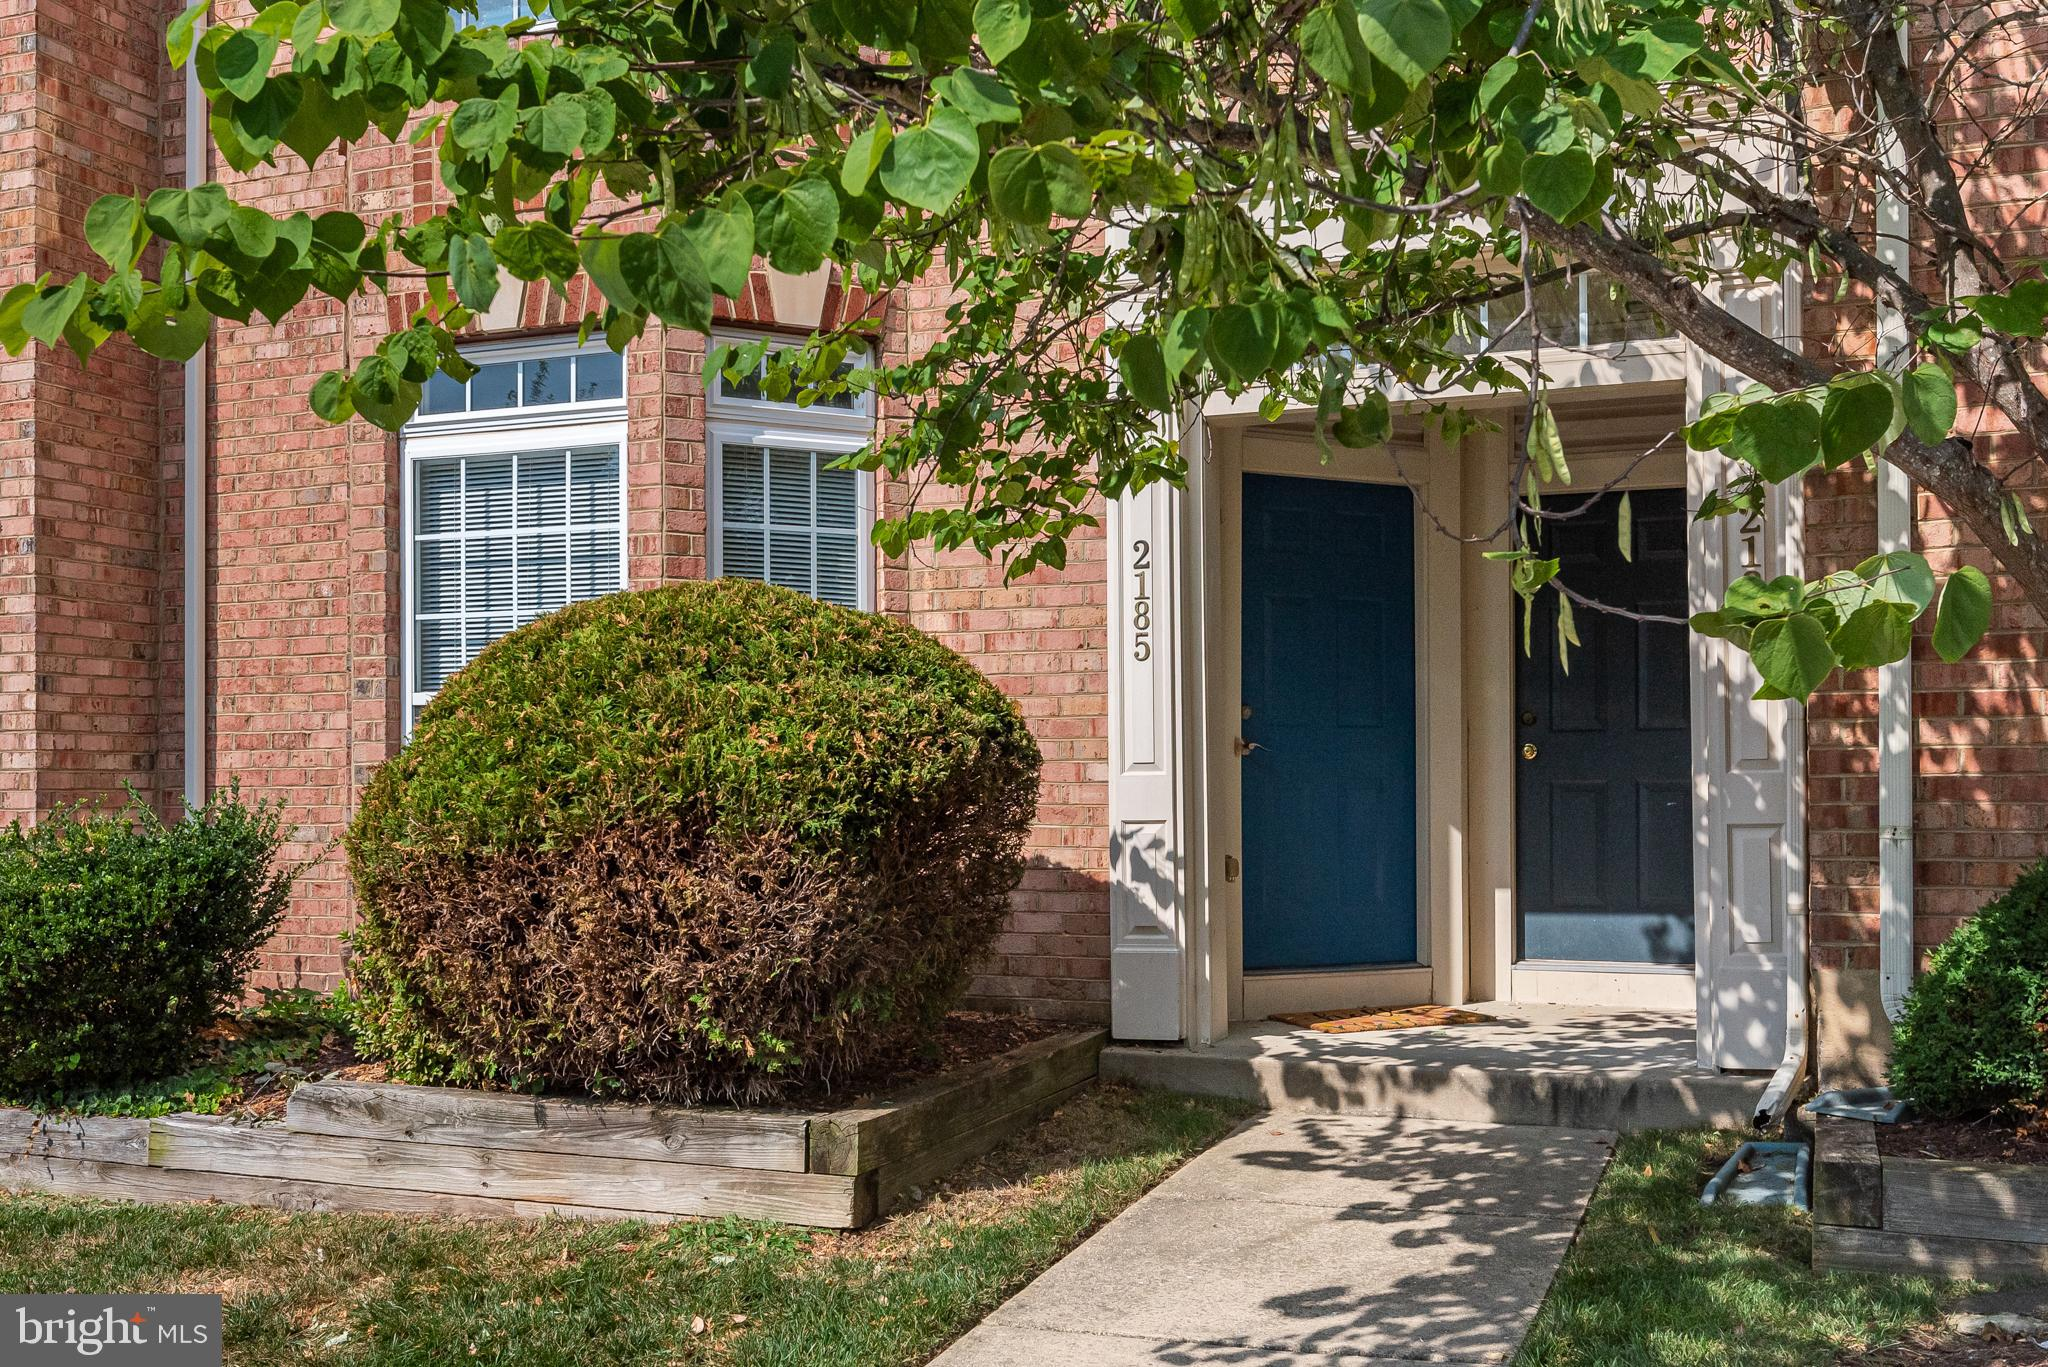 Welcome to 2185 Ivy Lane. Conveniently located in the heart of Chesapeake Beach, you are going to lo